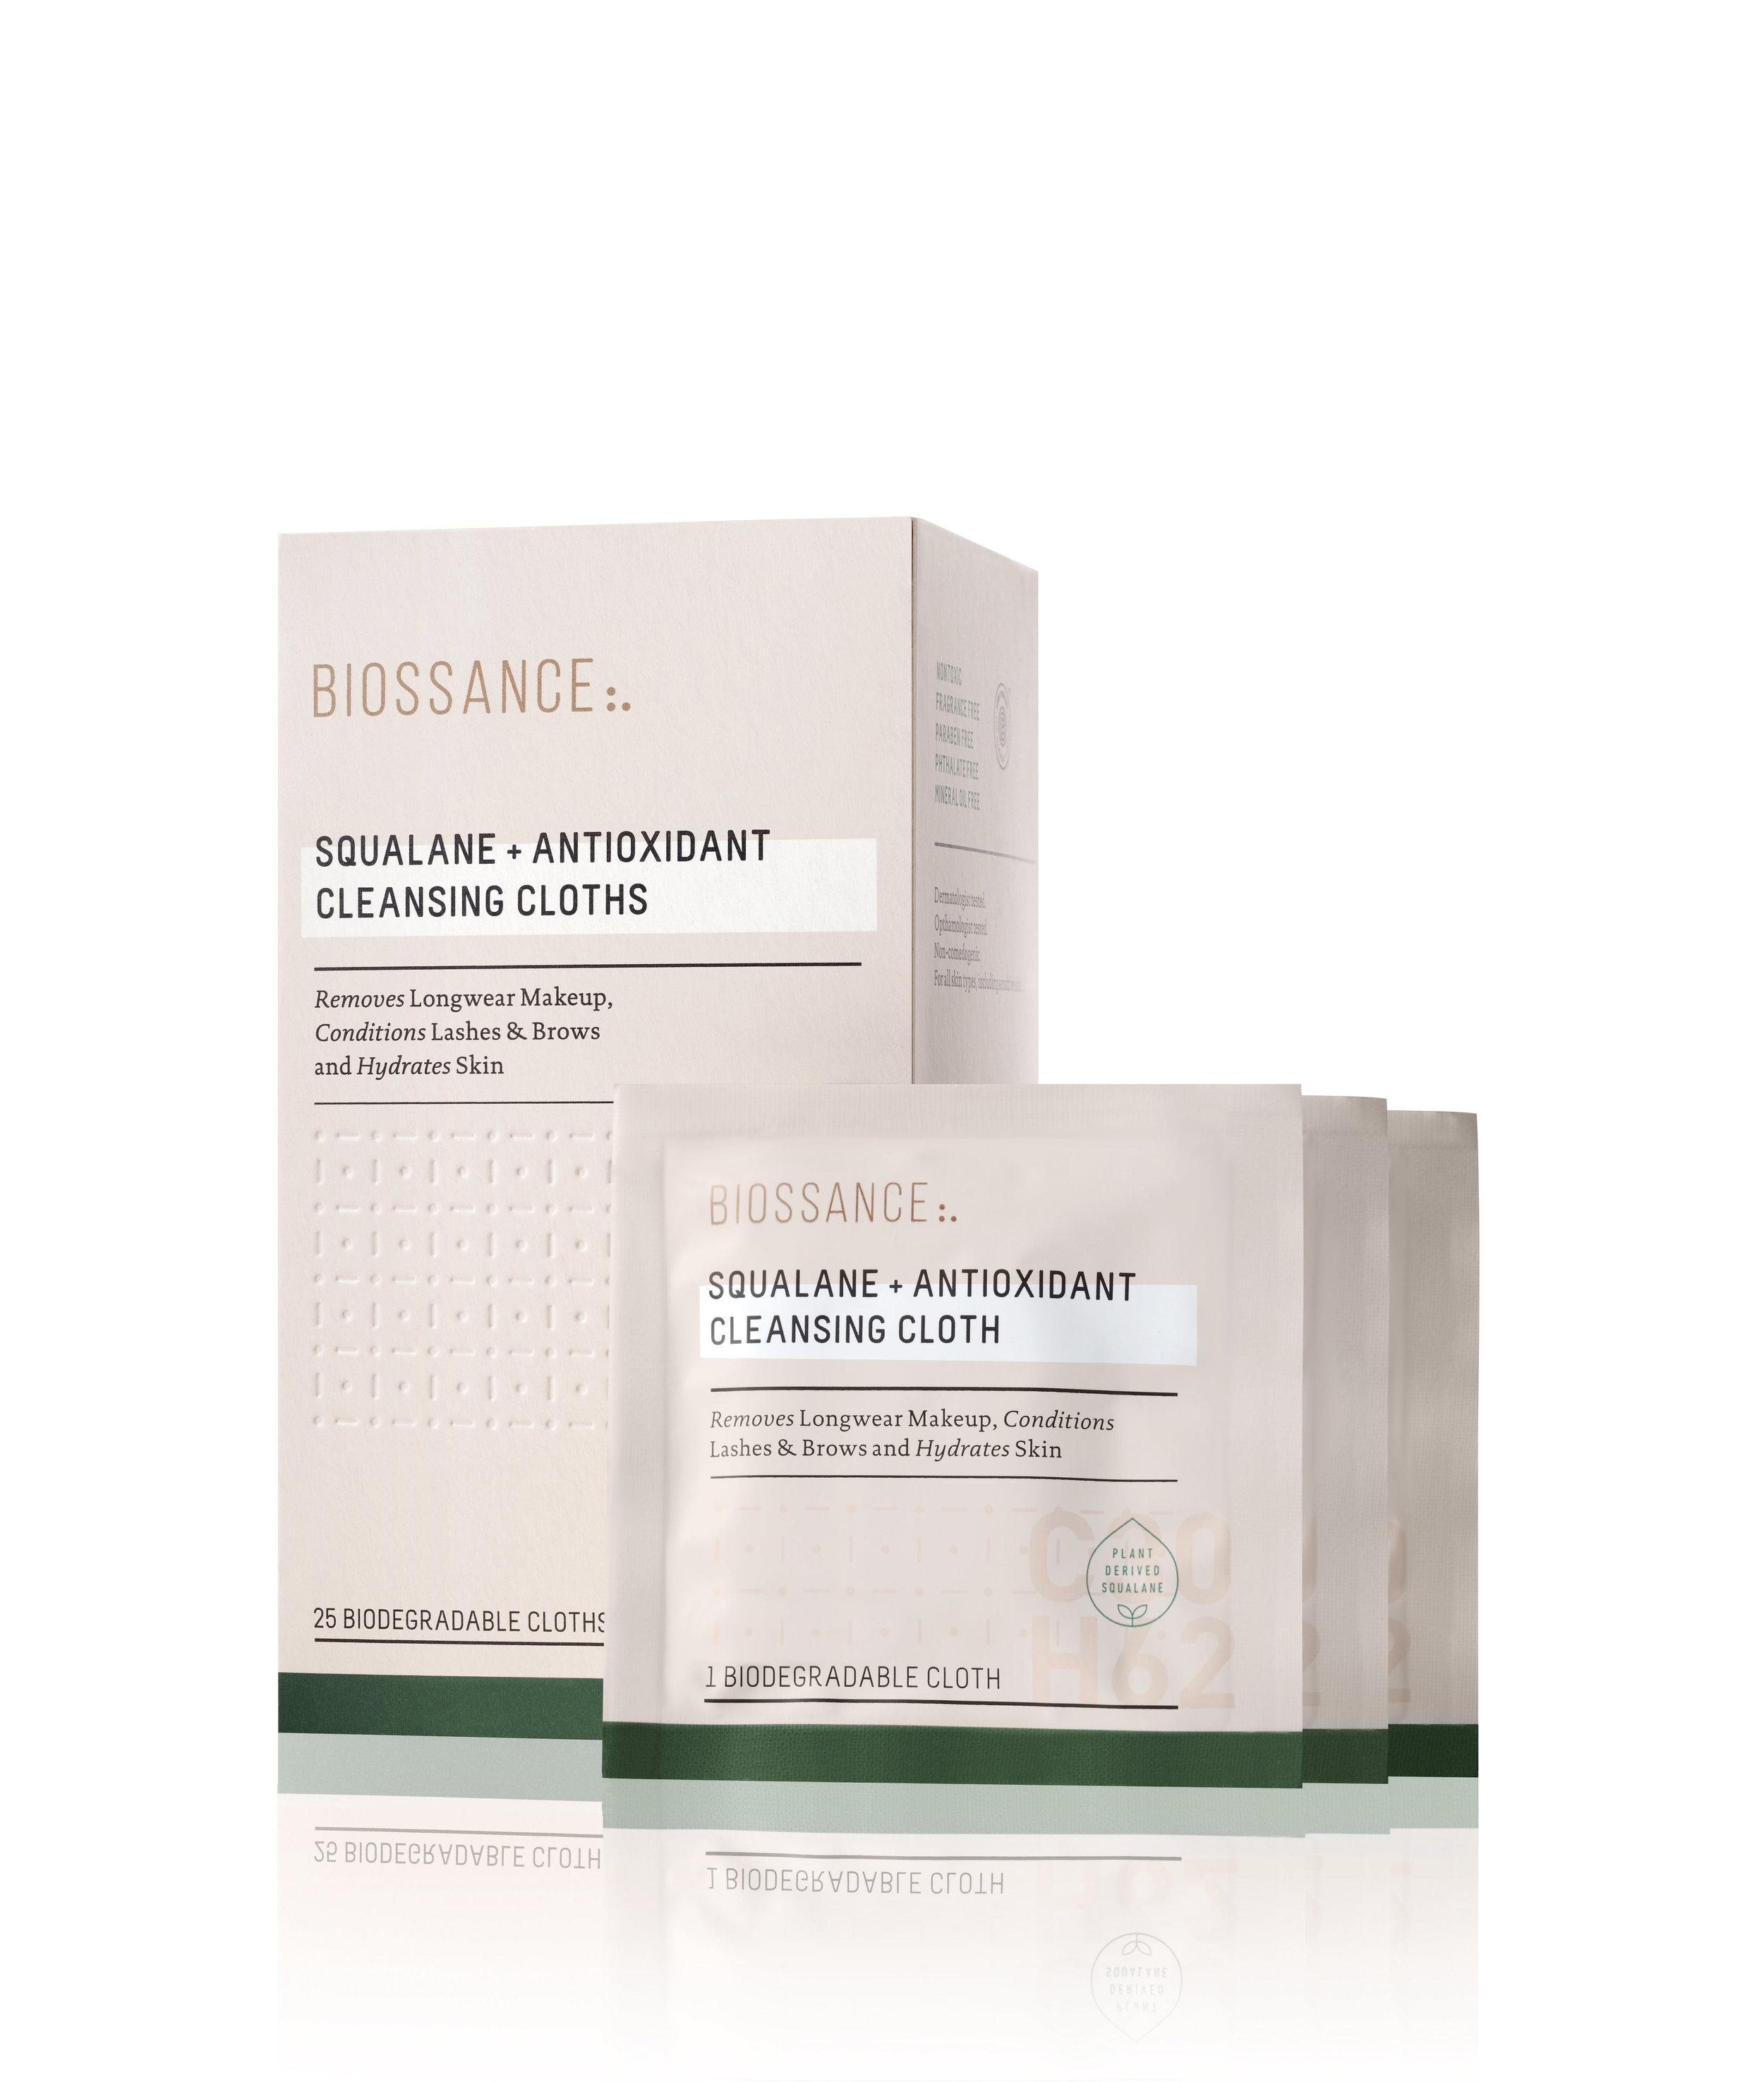 Bioessance Squalane+antioxidant cleansing cloth, Available at Bioessance